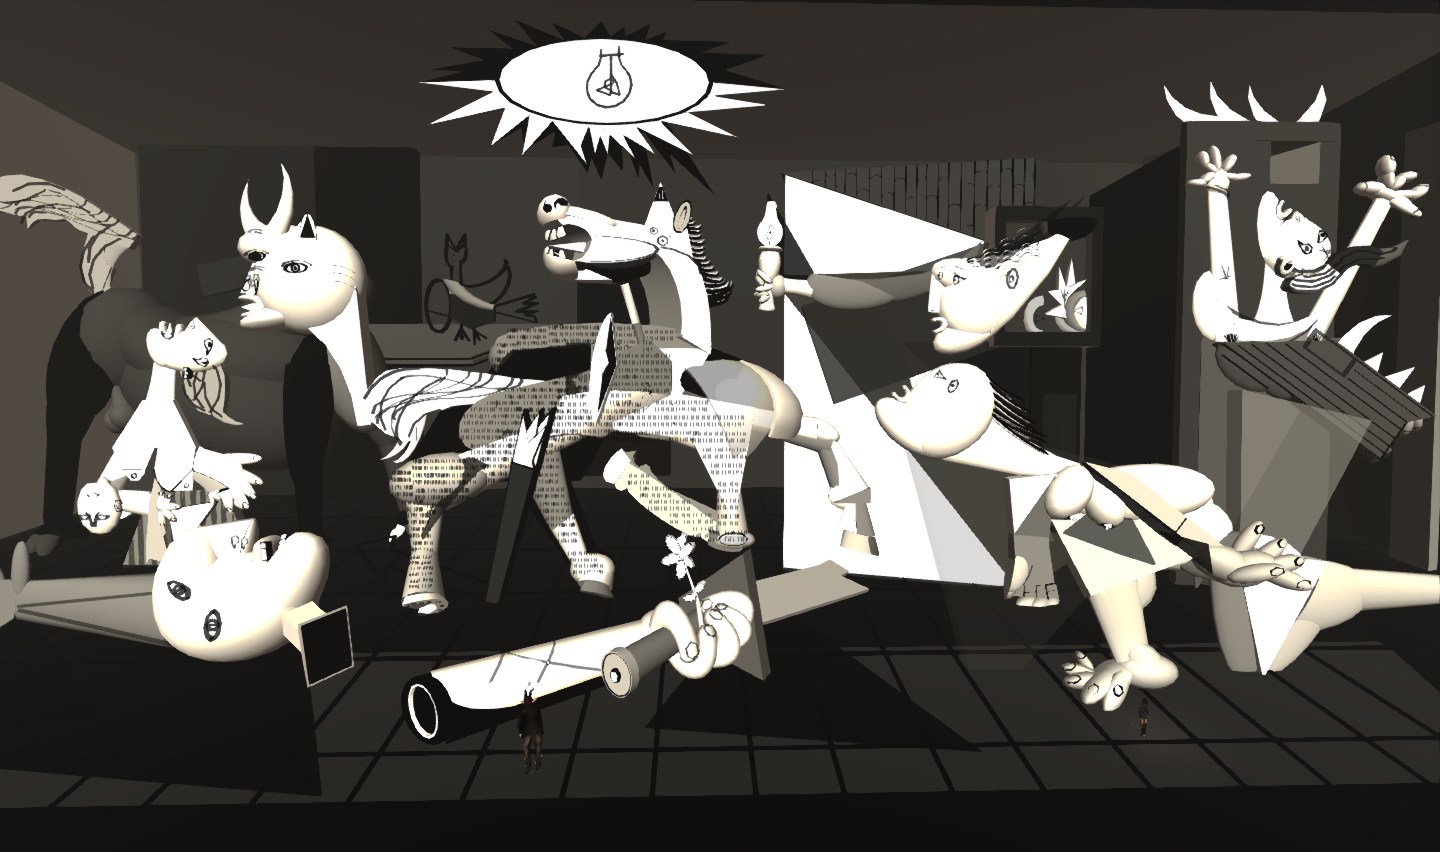 Quan 39 s travelogues 2d art in virtual interpretation for Mural guernica